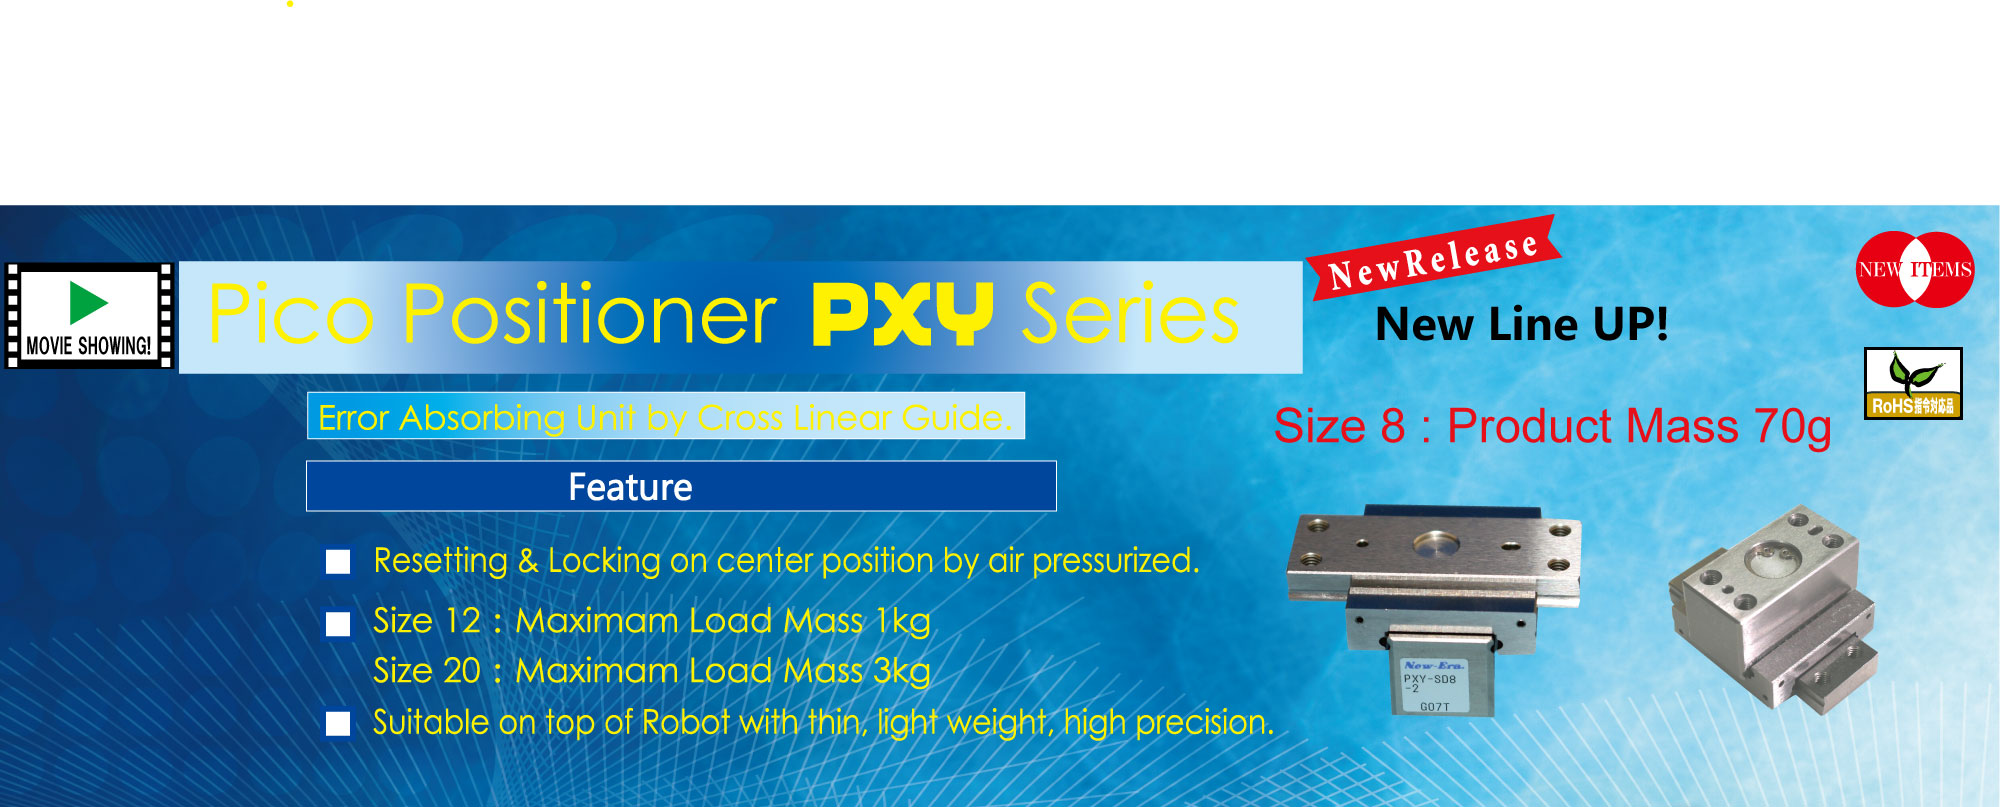 PXY series Pico Positioner